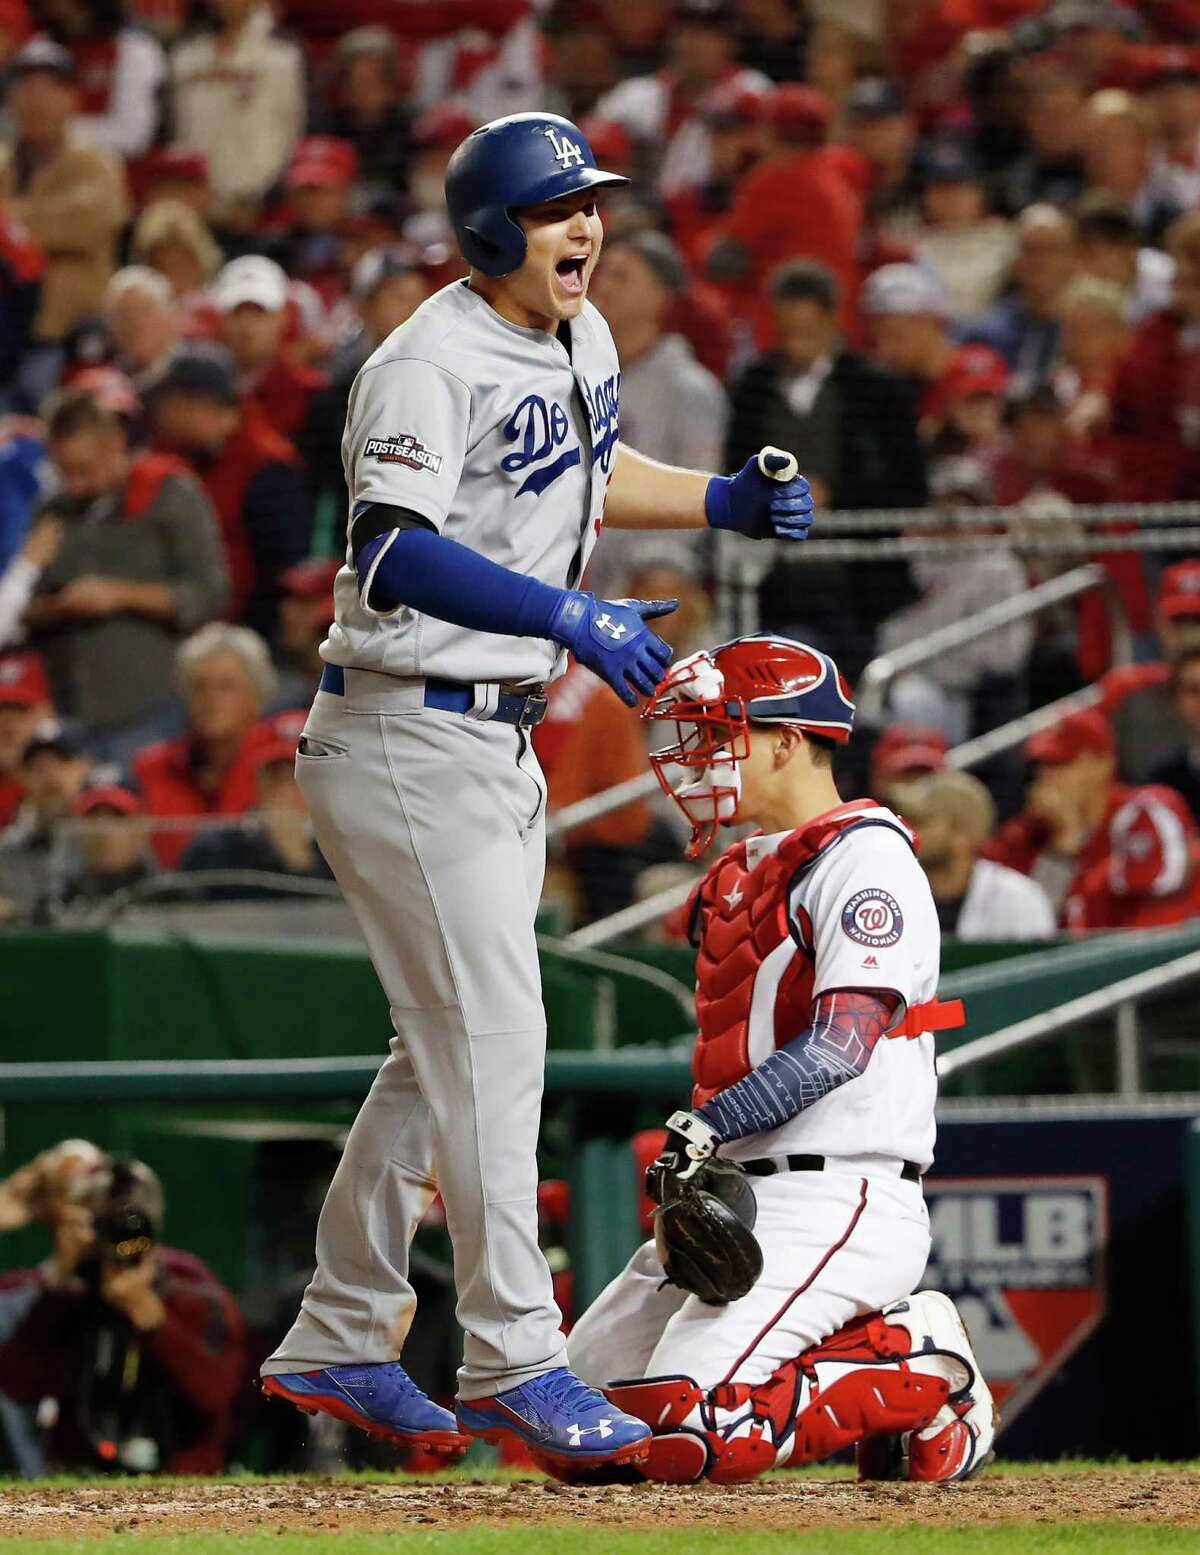 Los Angeles Dodgers' Joc Pederson celebrate as he crosses the plate to score past Washington Nationals catcher Jose Lobaton (59) on a solo home run during the seventh inning of Game 5 of baseball's National League Division Series at Nationals Park, Thursday, Oct. 13, 2016, in Washington.